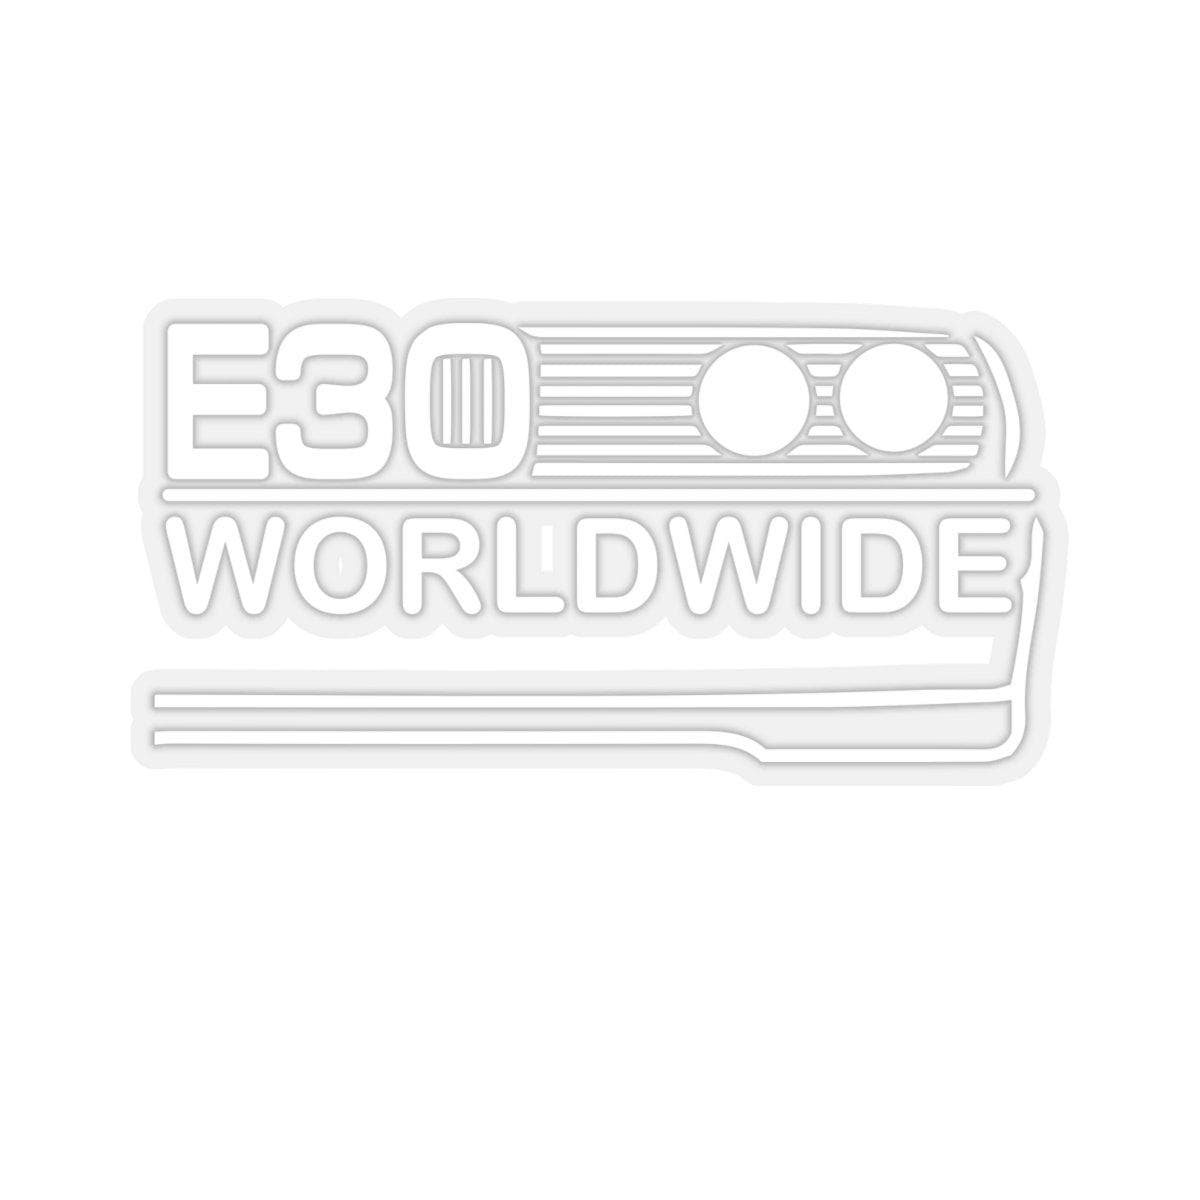 E30 Worldwide Kiss Cut Sticker - ShopE30